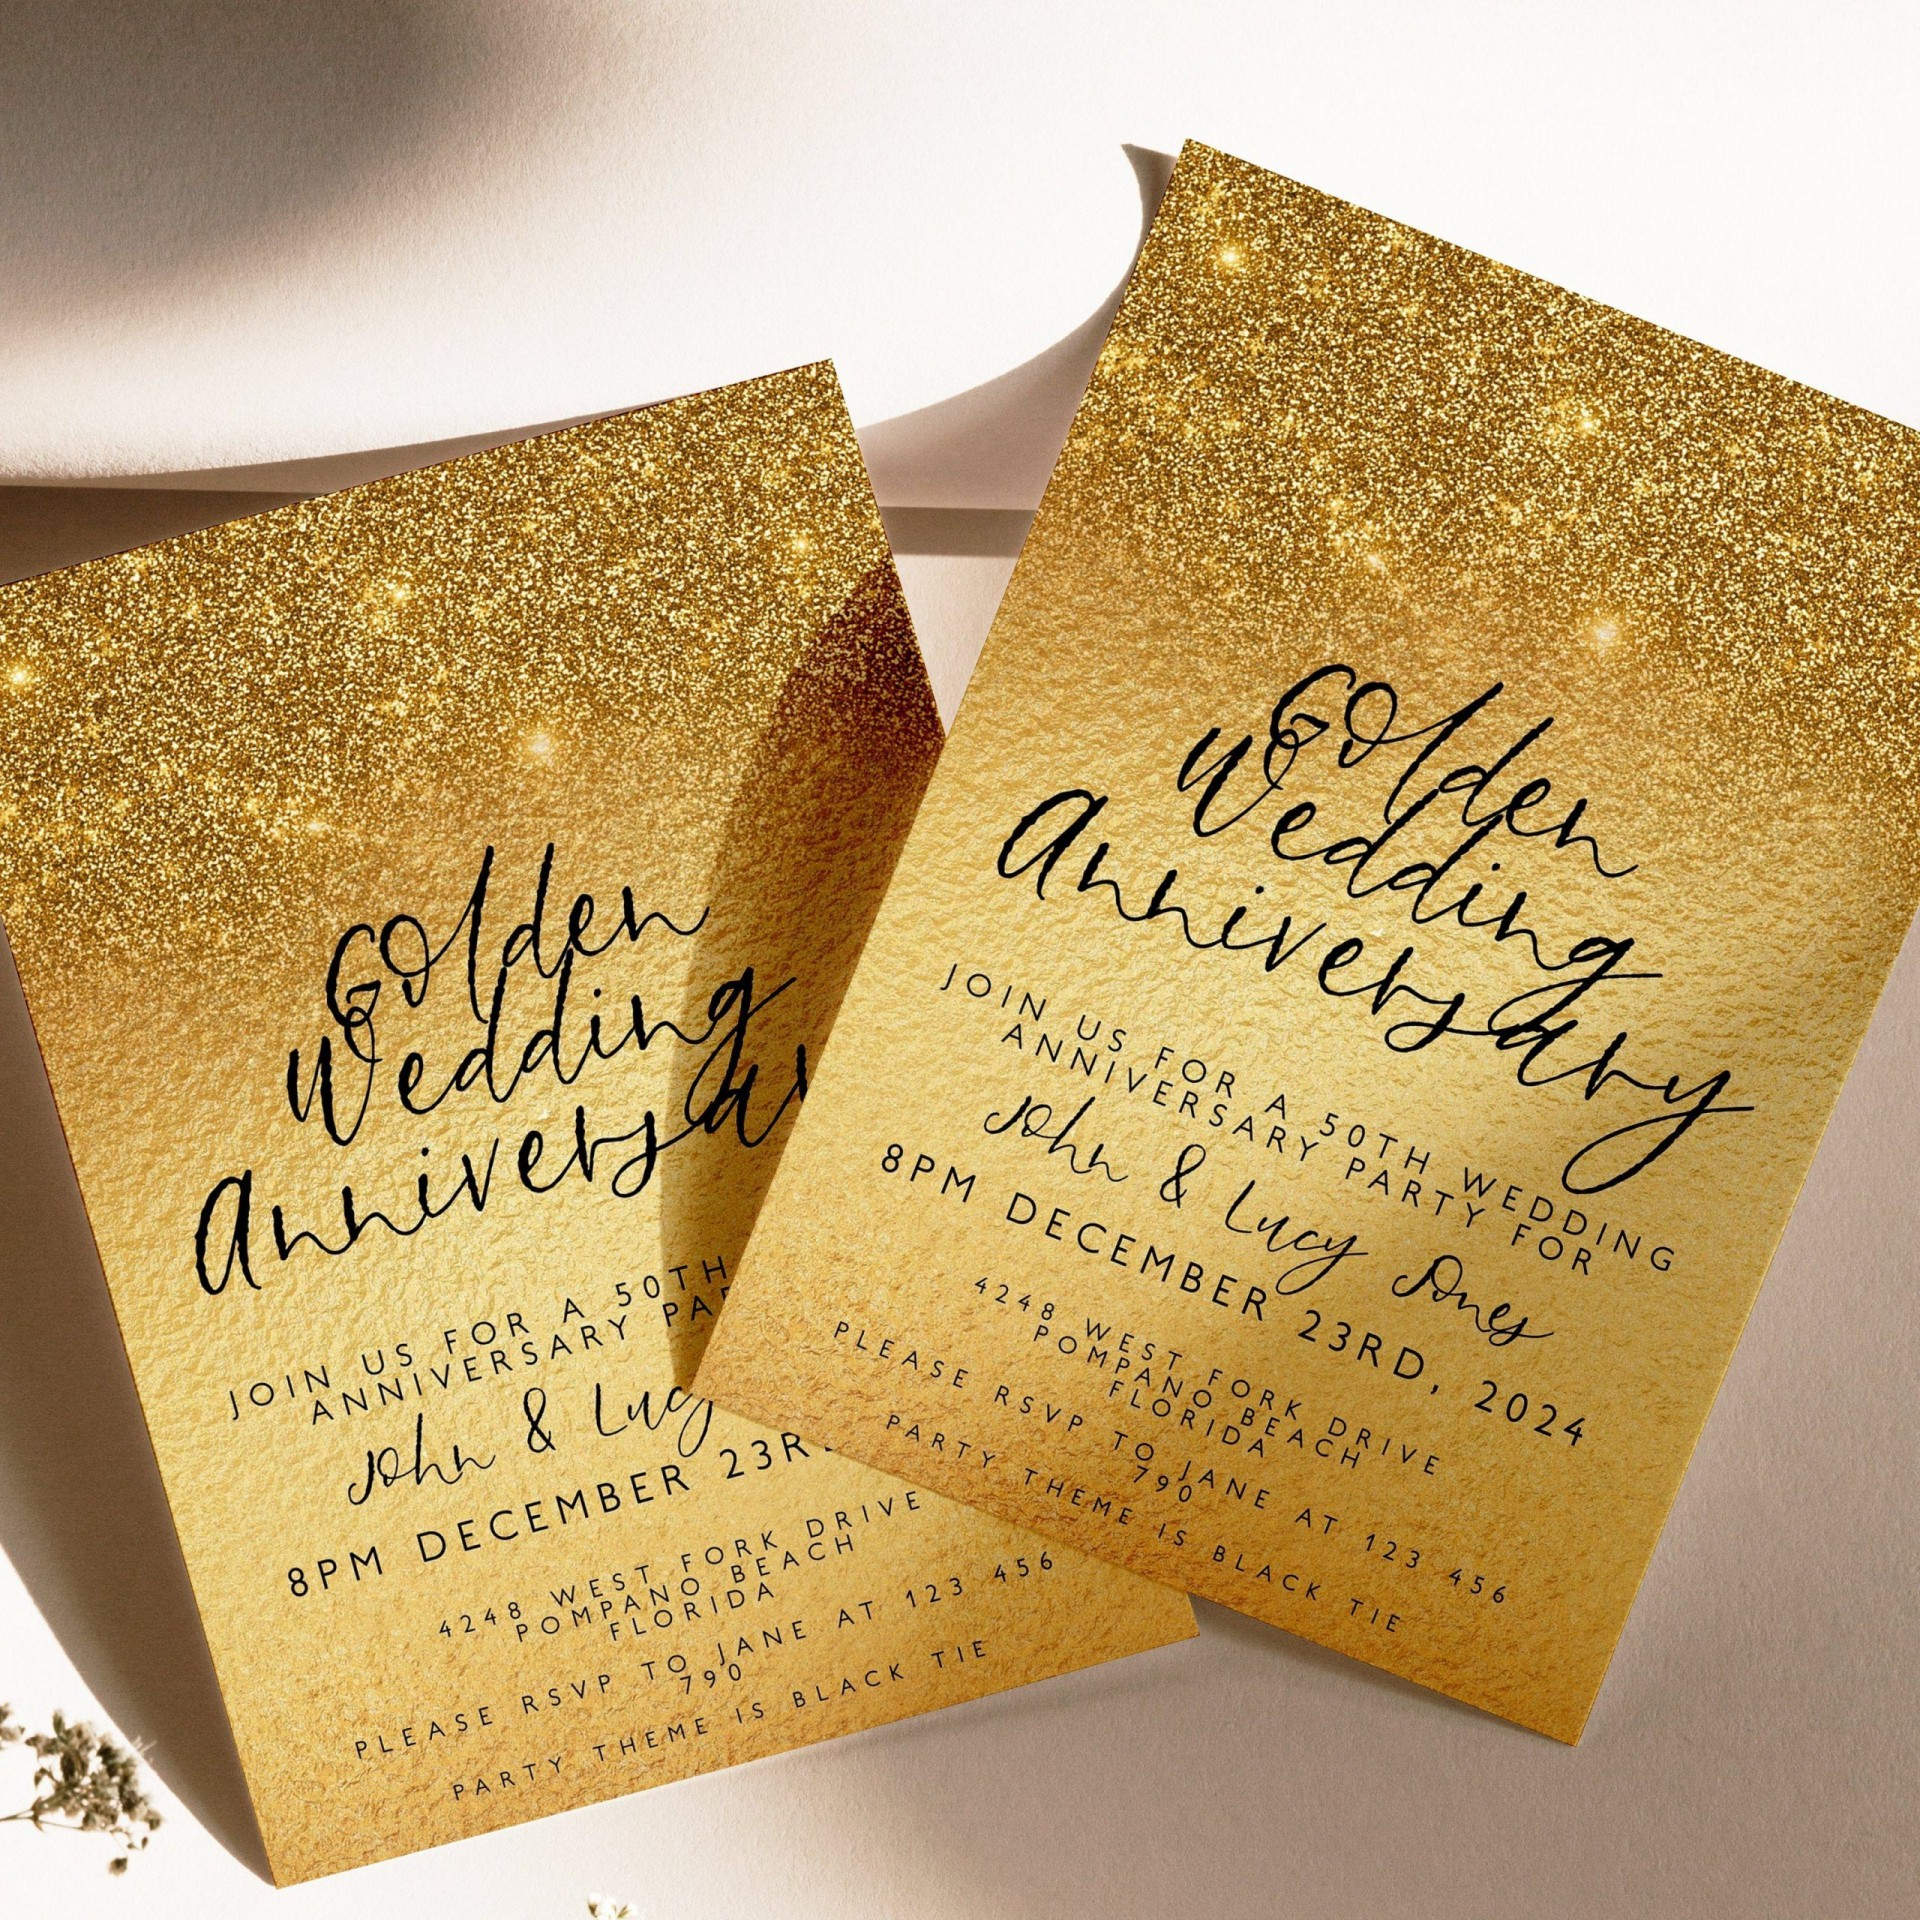 000 Exceptional 50th Anniversary Party Invitation Template Example  Templates Golden Wedding Uk Microsoft Word Free1920